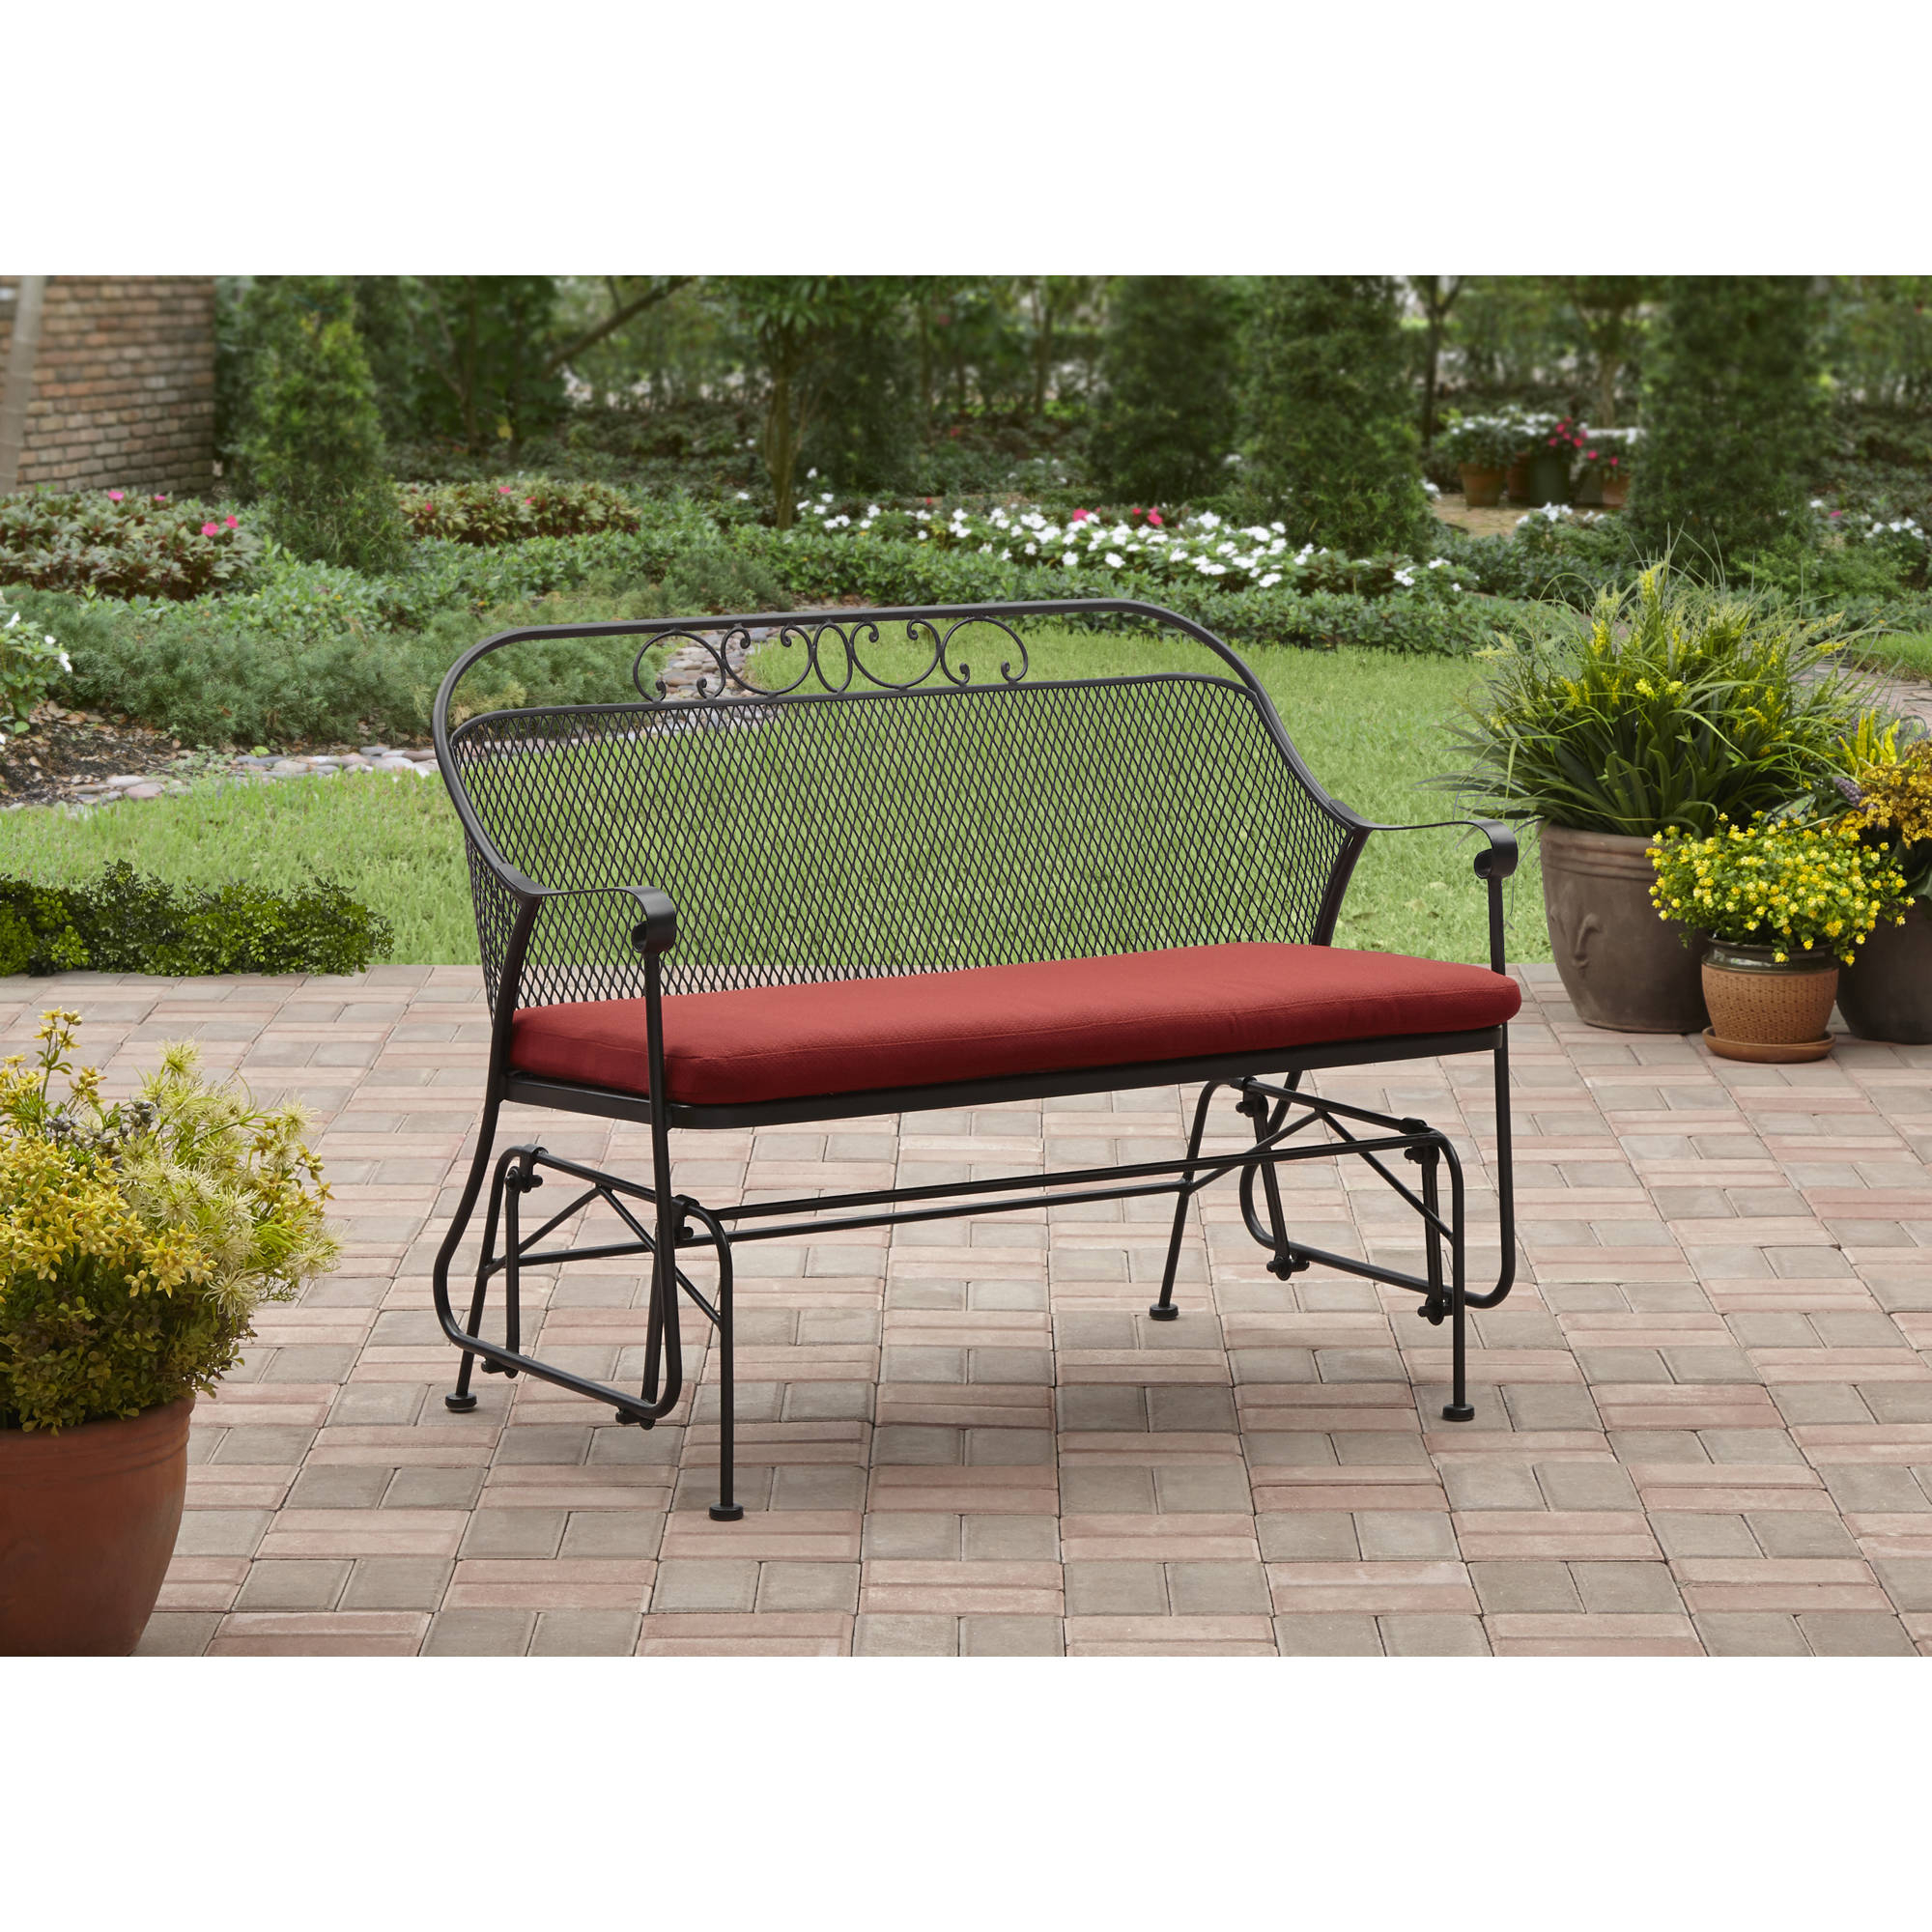 Furniture Patio Steel Costway Outdoor Swing Porch Rocker Throughout Outdoor Patio Swing Porch Rocker Glider Benches Loveseat Garden Seat Steel (View 18 of 25)